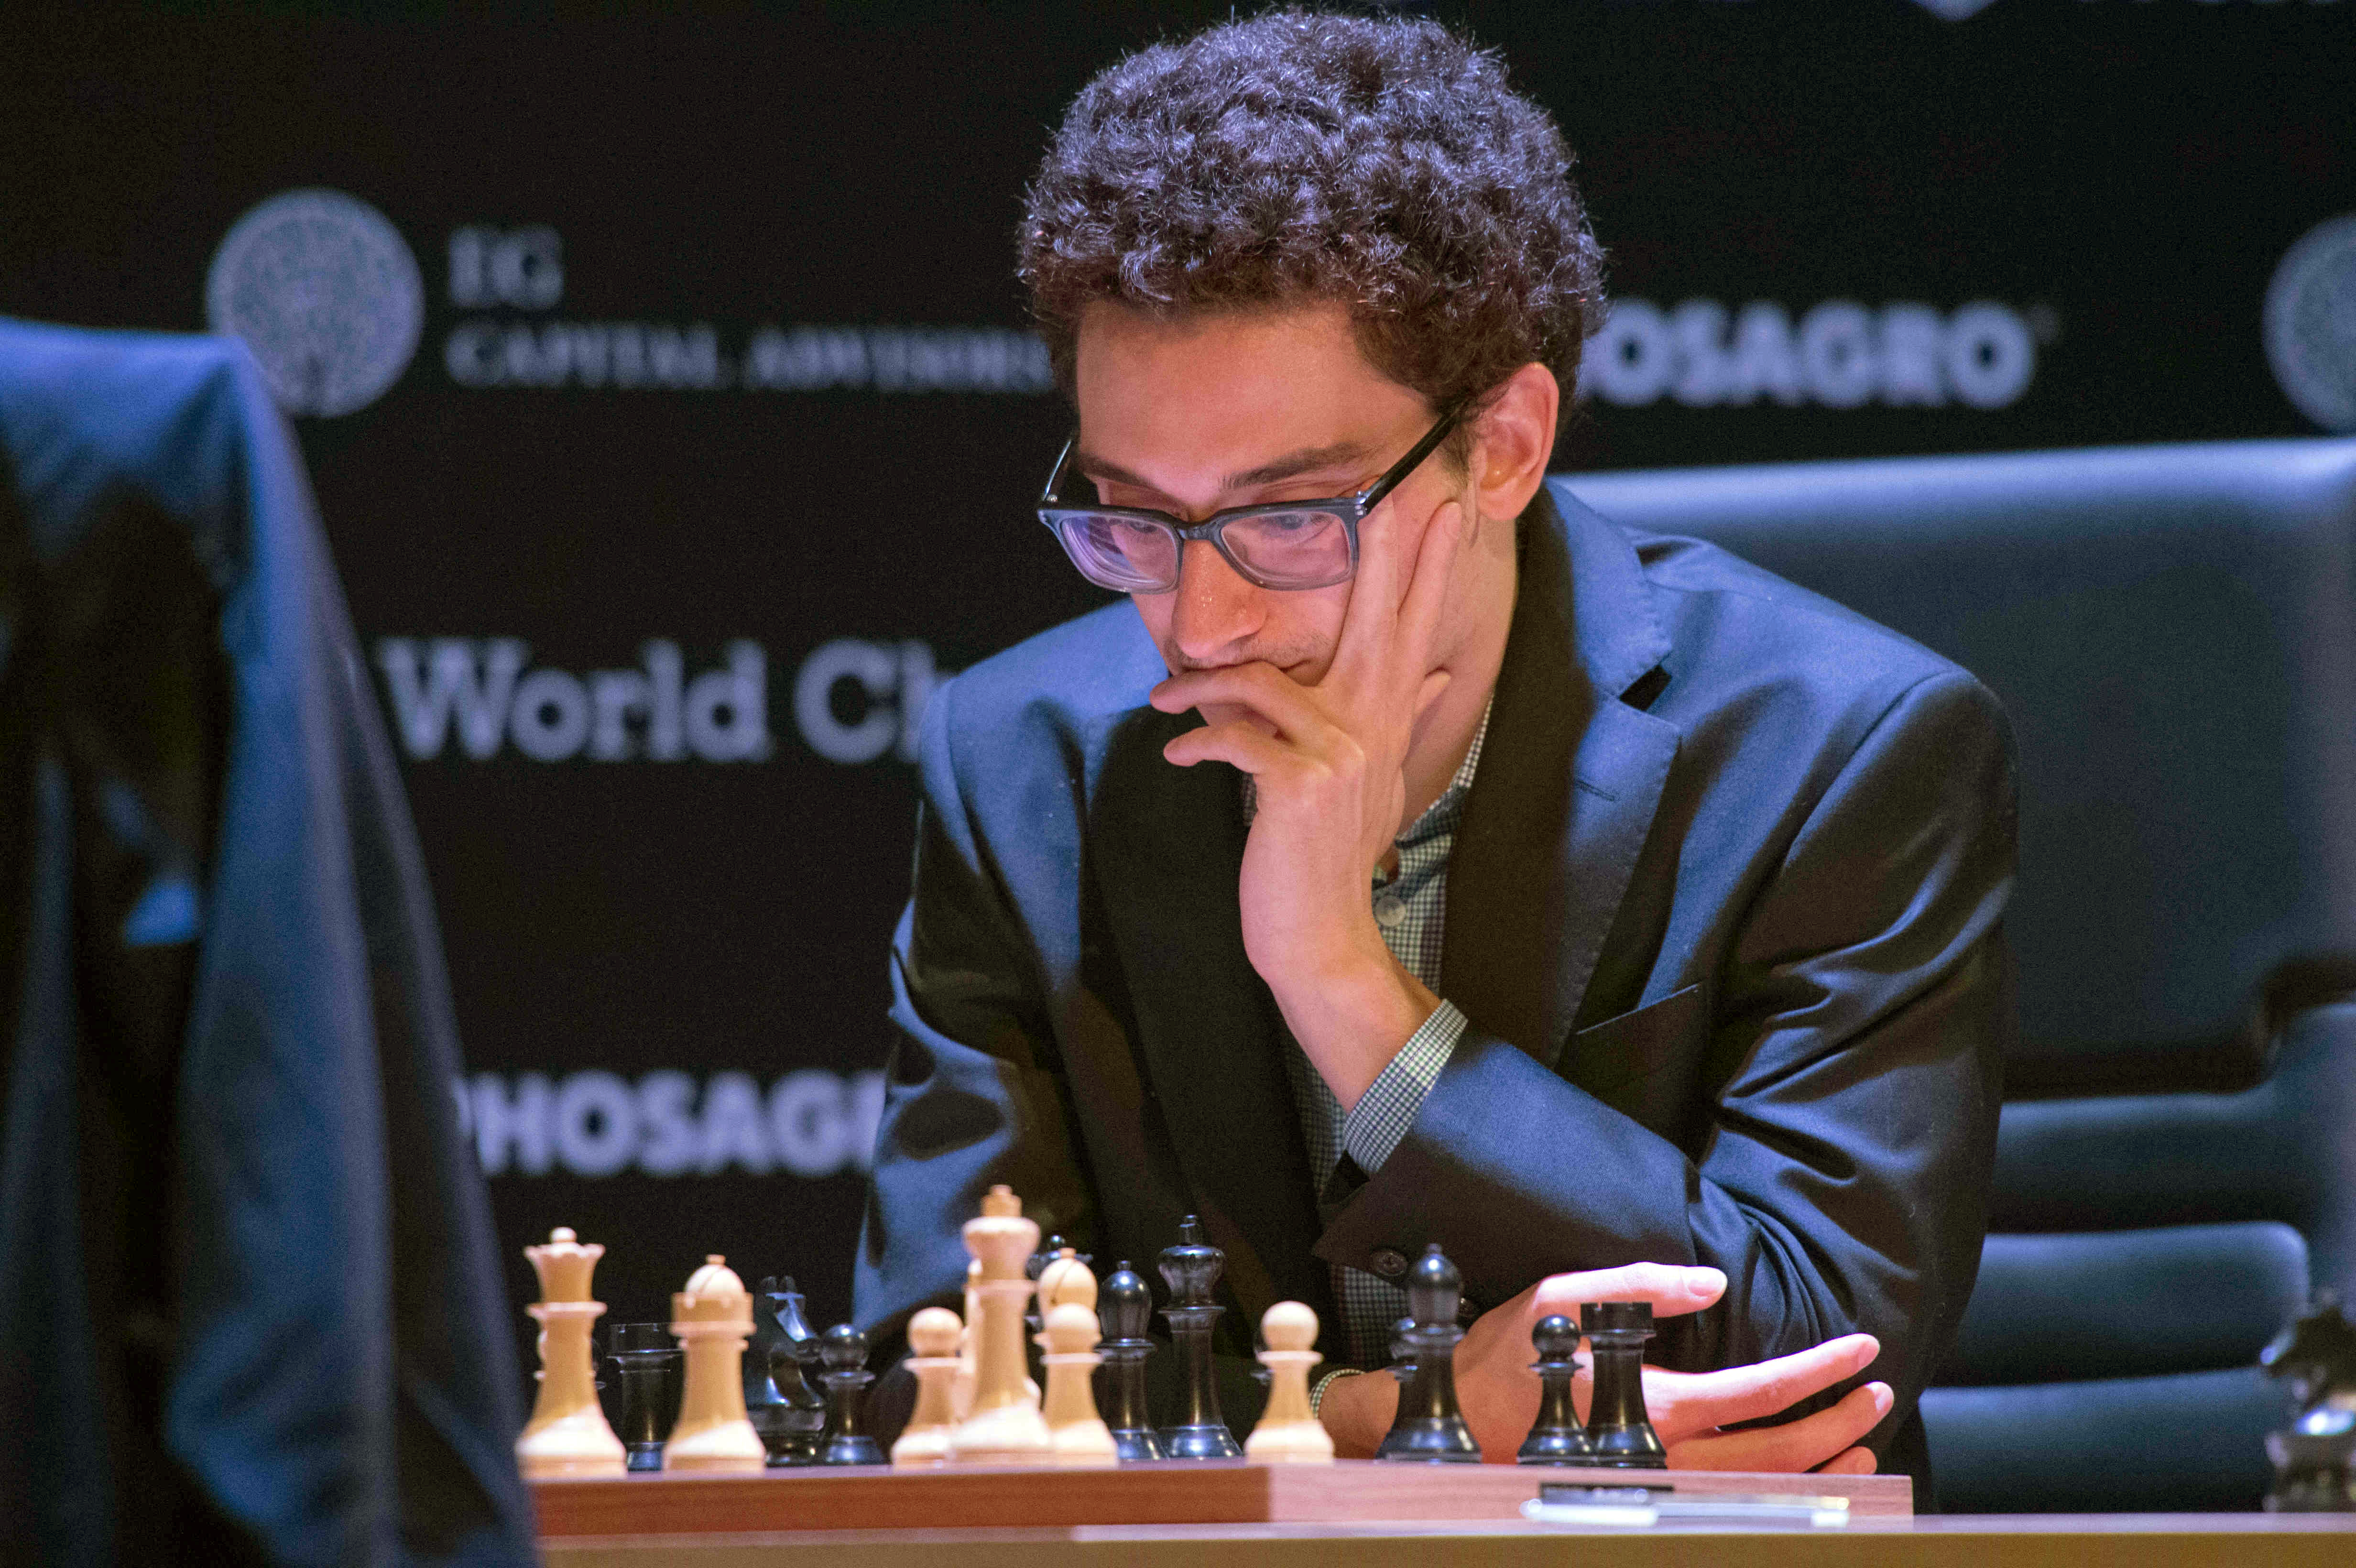 Fabiano Caruana, a US-American and Italian chess grand master, and Grischuk (not pictured), chess grand master of Russia, playing at their boards at the  FIDE World Chess Candidates Tournament  in March 2018. (